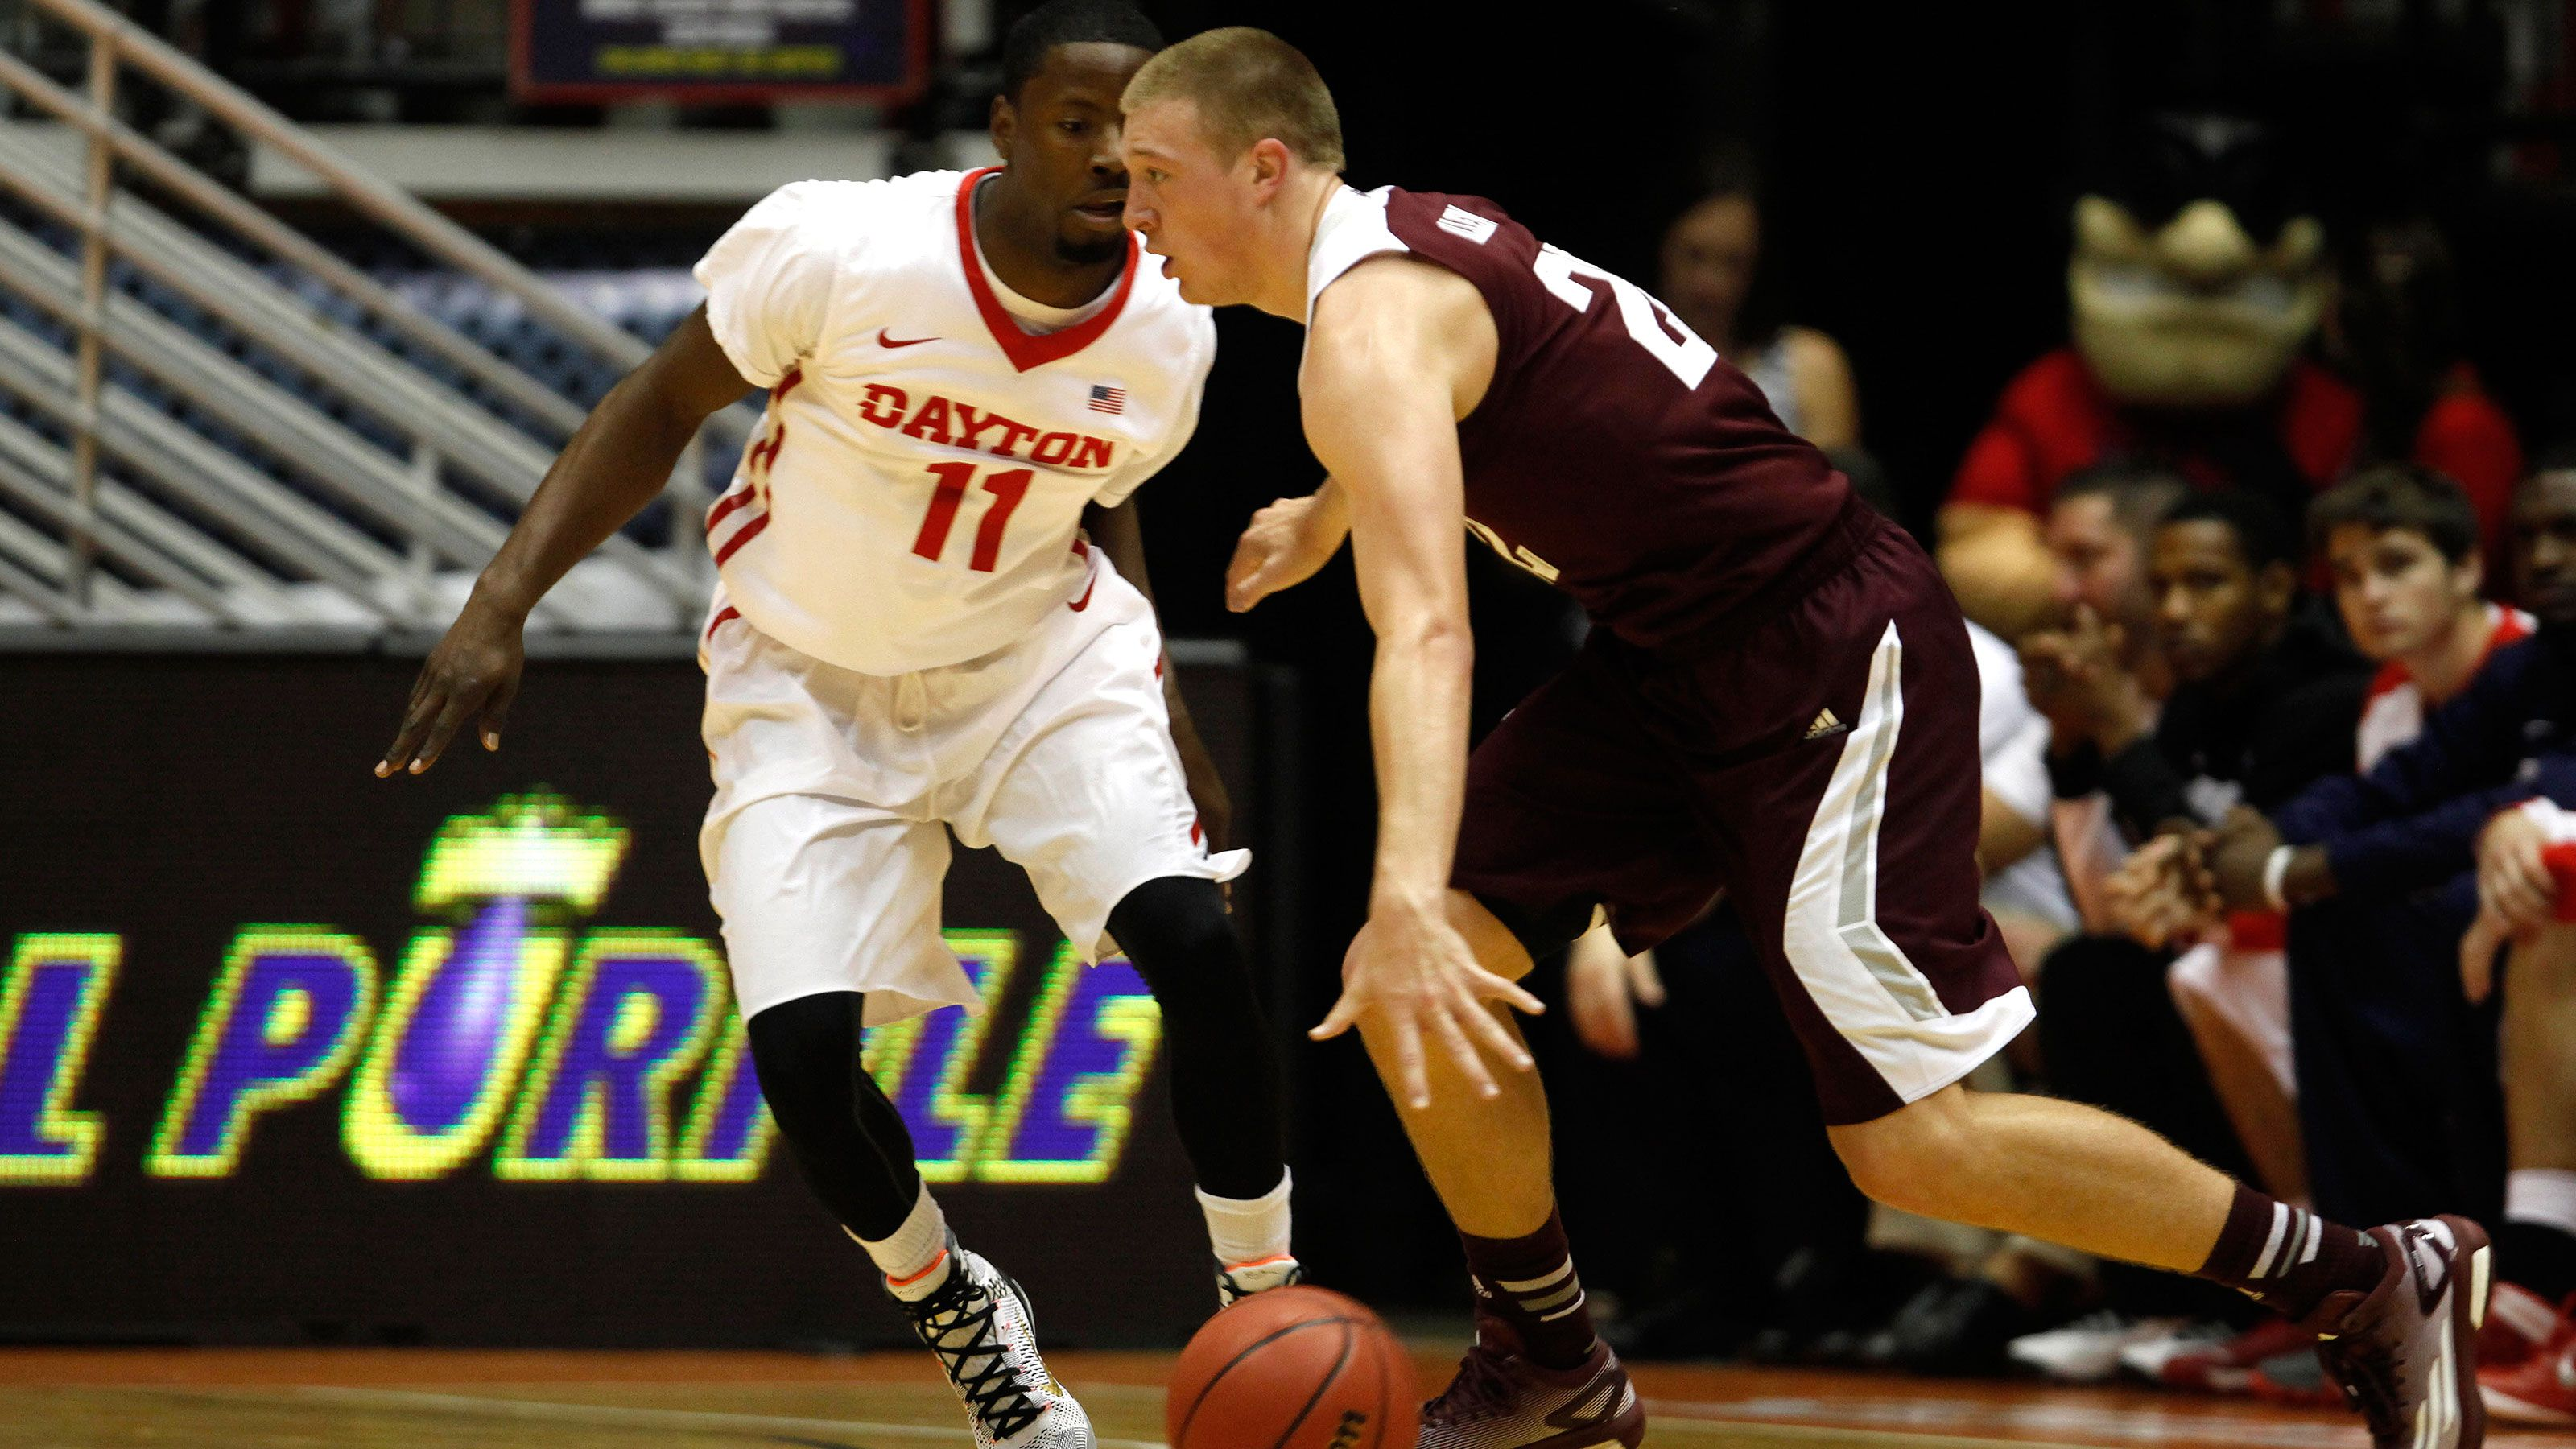 Aggies fall in final seconds to Flyers